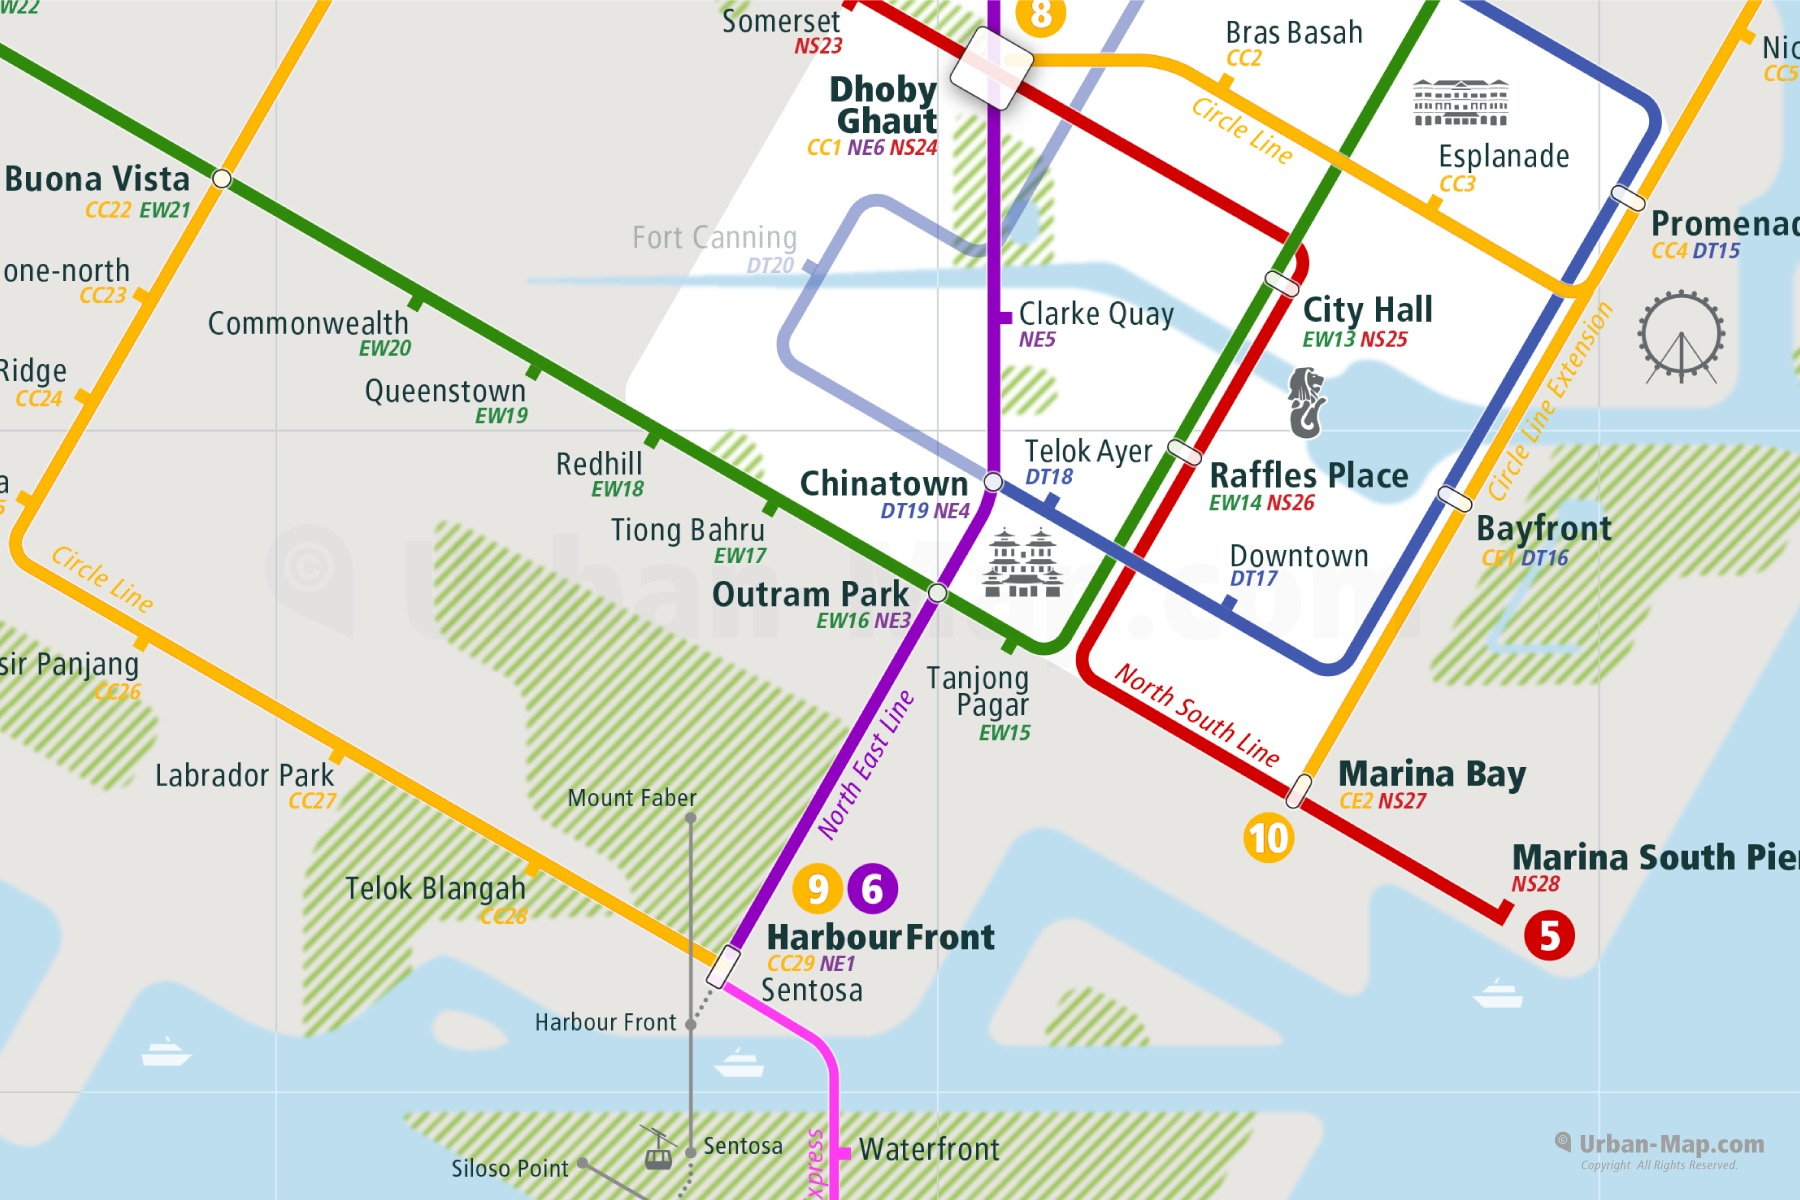 Singapore City Rail Map shows the train and public transportation routes of Metro